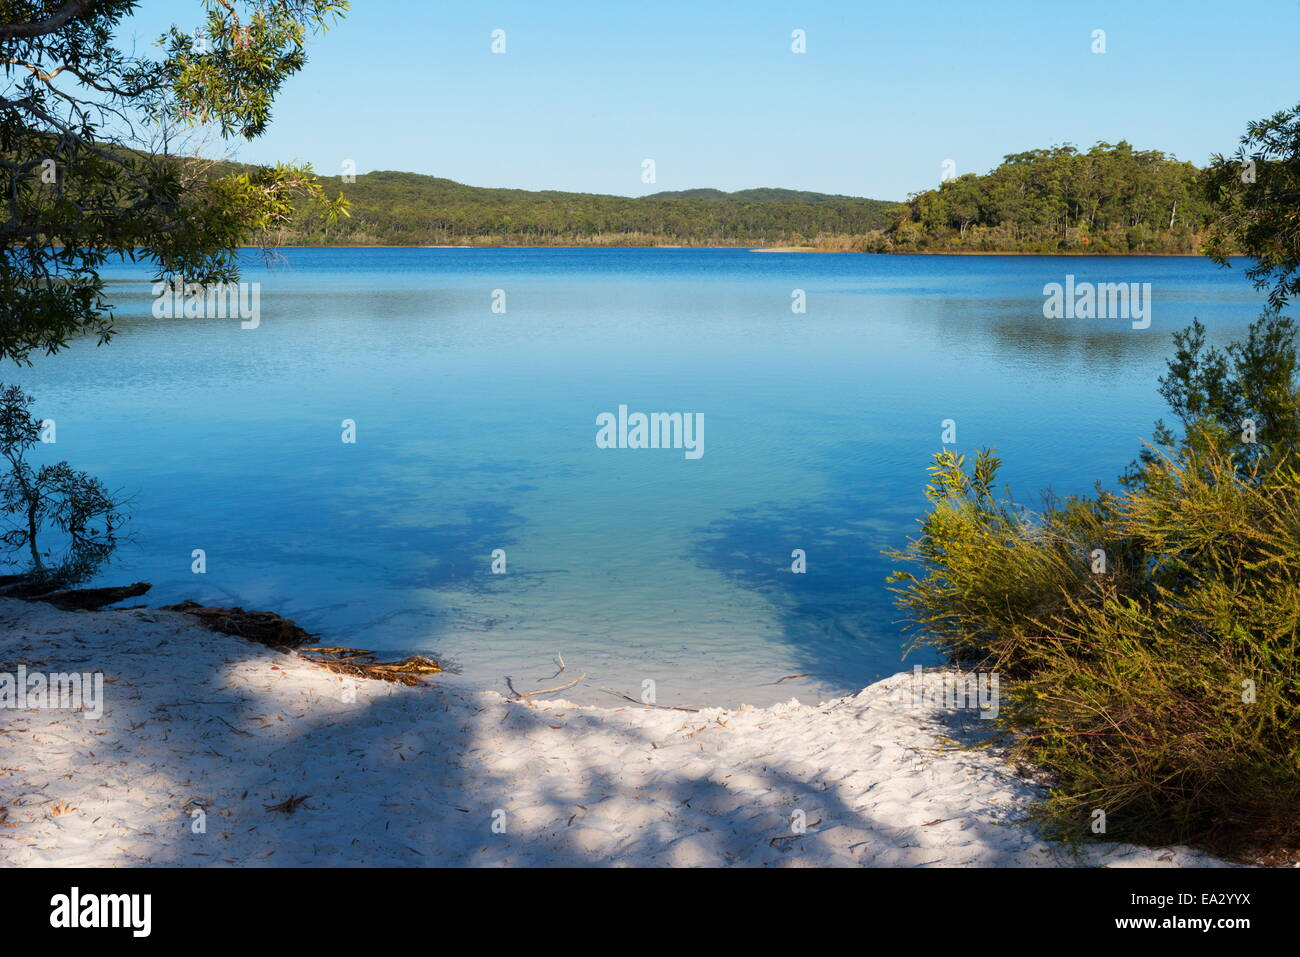 McKenzie Lake, Fraser Island, UNESCO World Heritage Site, Queensland, Australia, Pacific - Stock Image